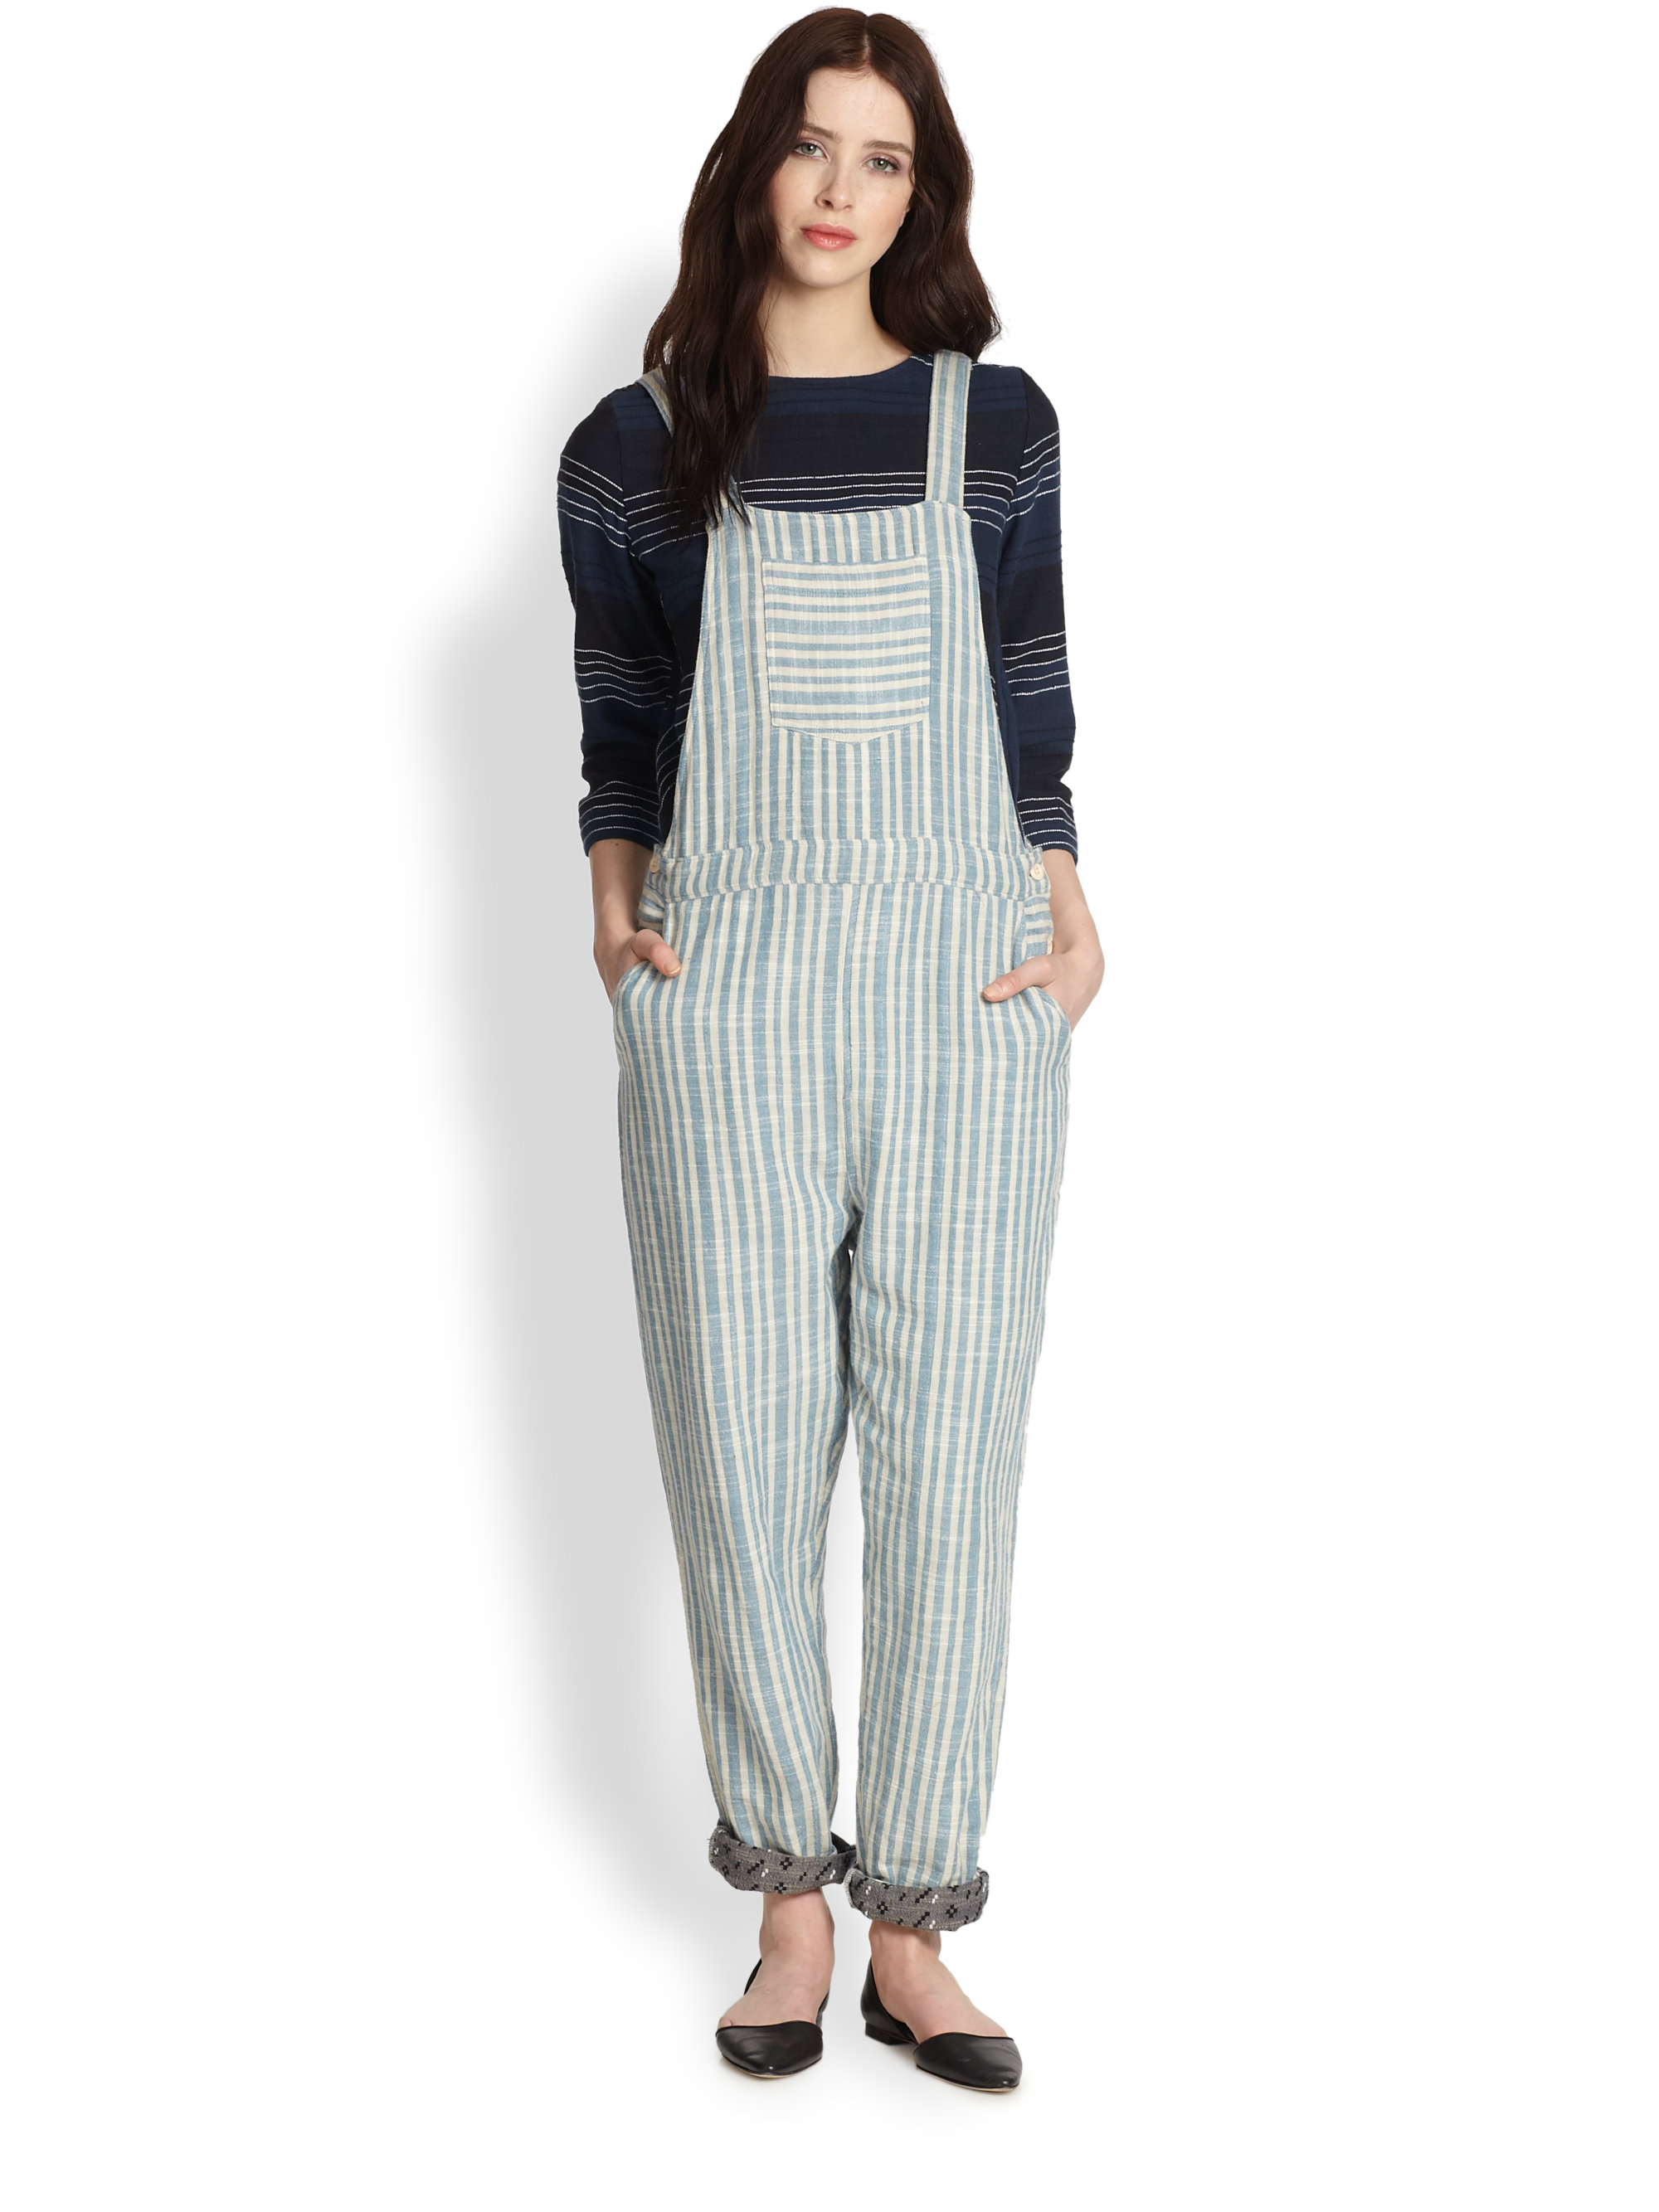 Overalls Are Making A Comeback As The Latest Fashion Trend: Ace & Jig Striped Overalls In Blue